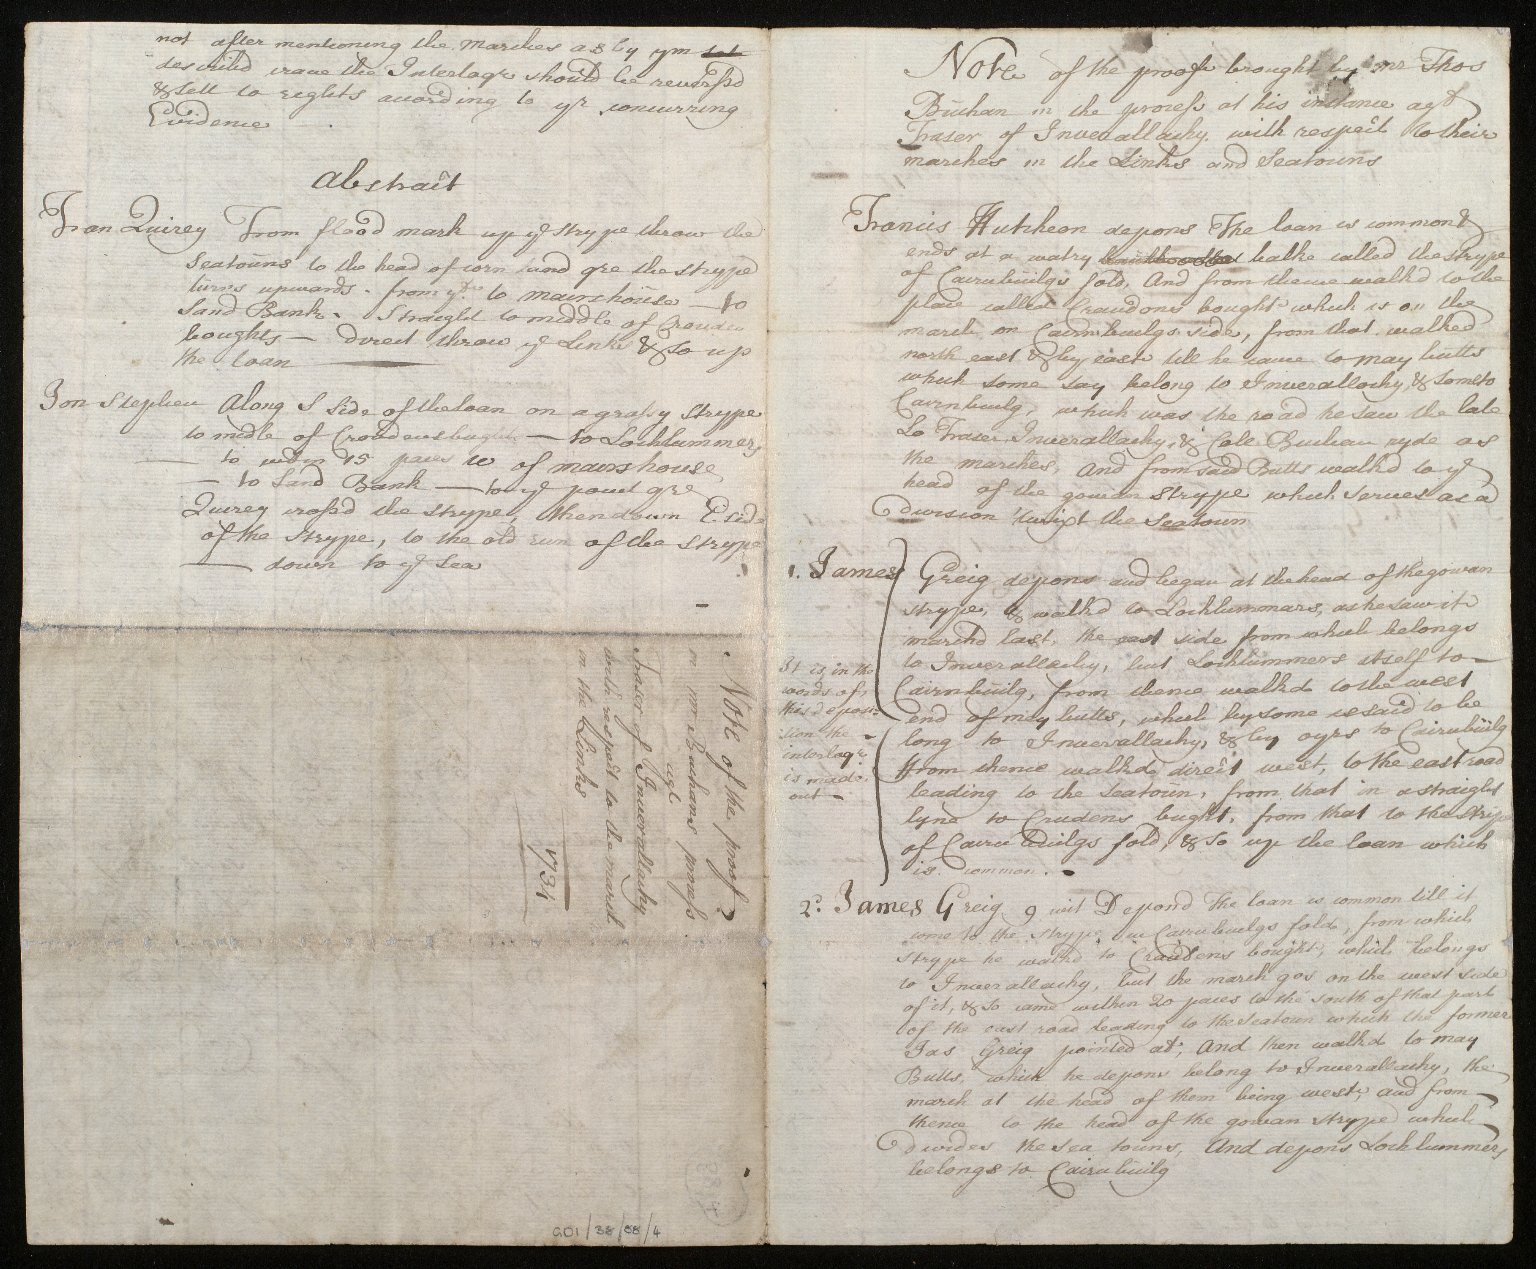 Note of the proof brought by Mr Thos Buchan in the process at his instance ag[ainst] Fraser of Inverallacky, with respect to their marches in the Links and Seatouns [1 of 2]